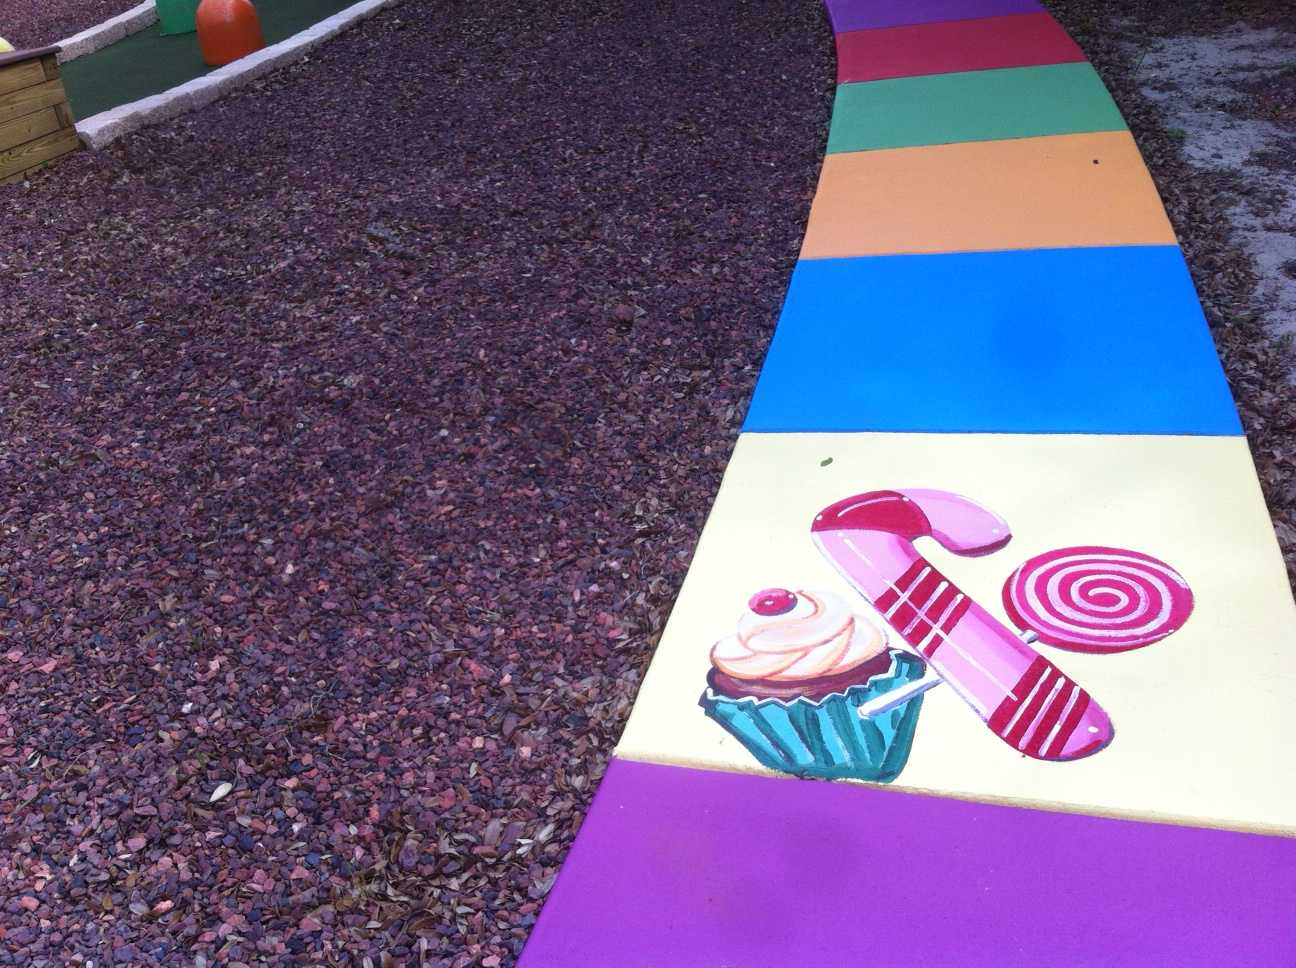 Giant Candyland Walkway Play Human Candyland At The Sweet Escape Vacation Home Rental